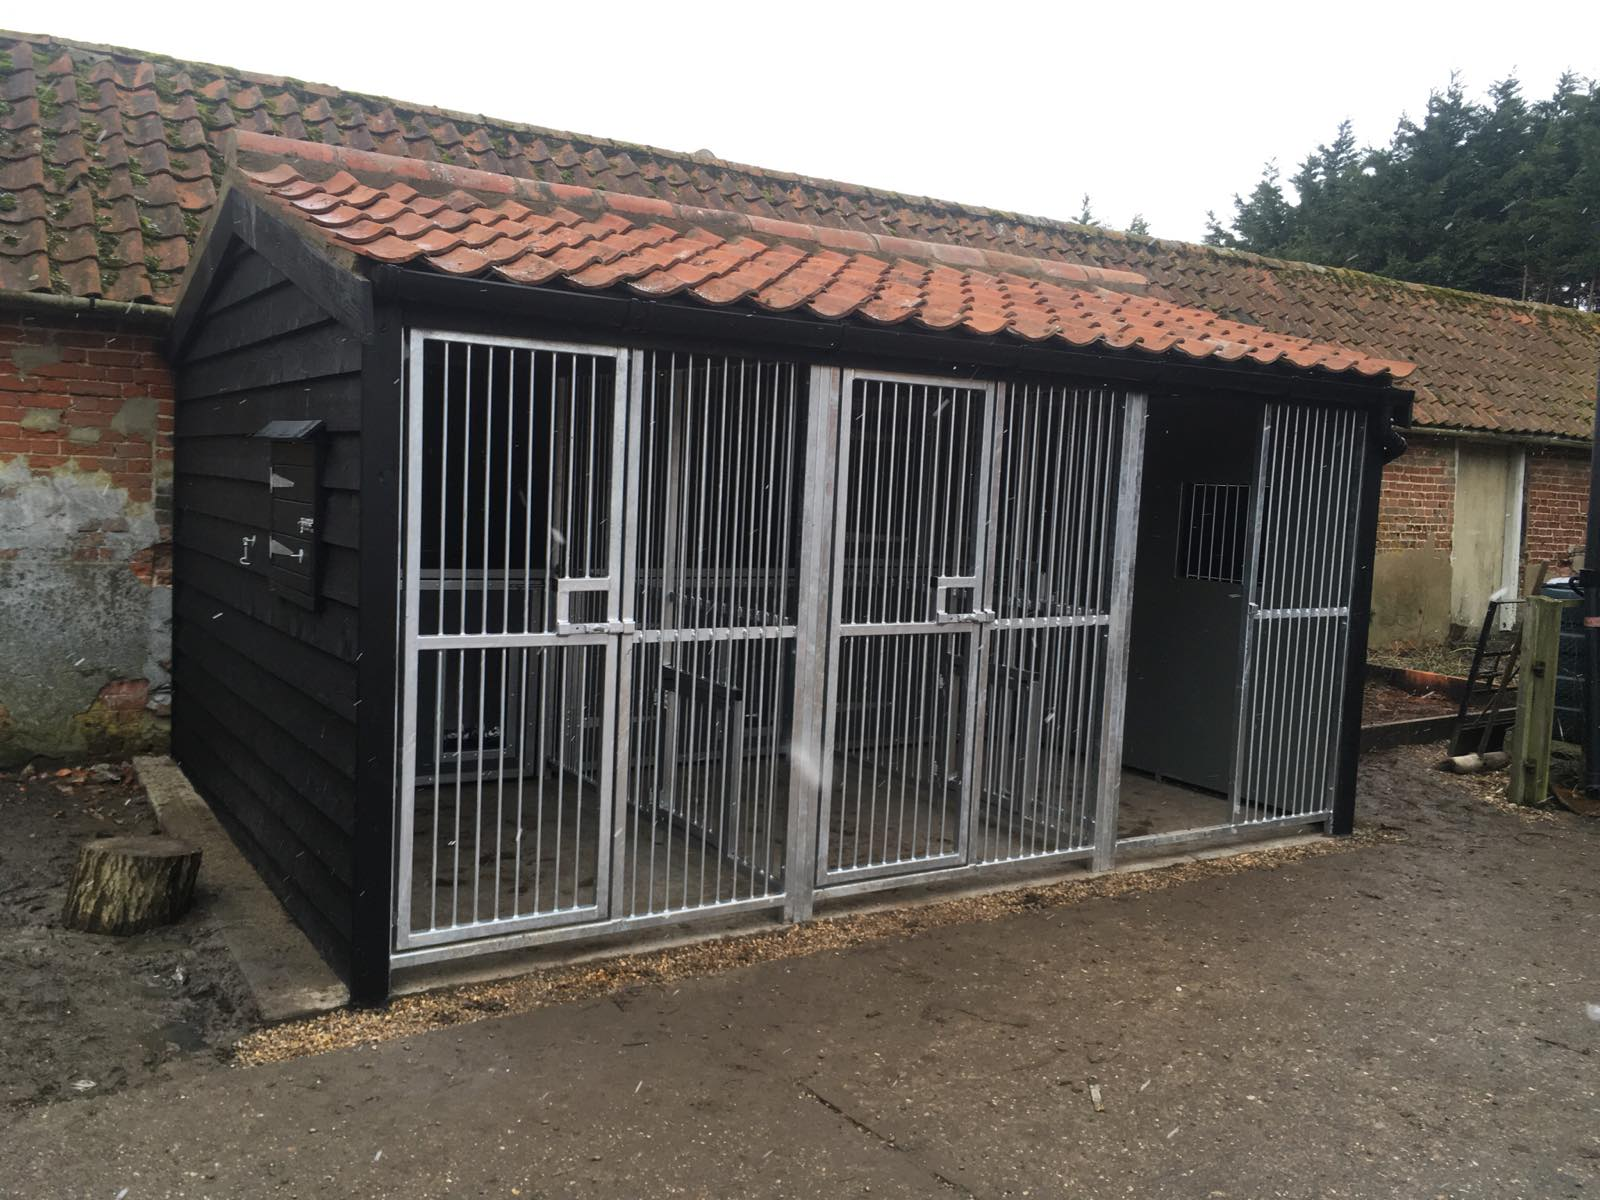 Dog kennels built for comfort, safety and security